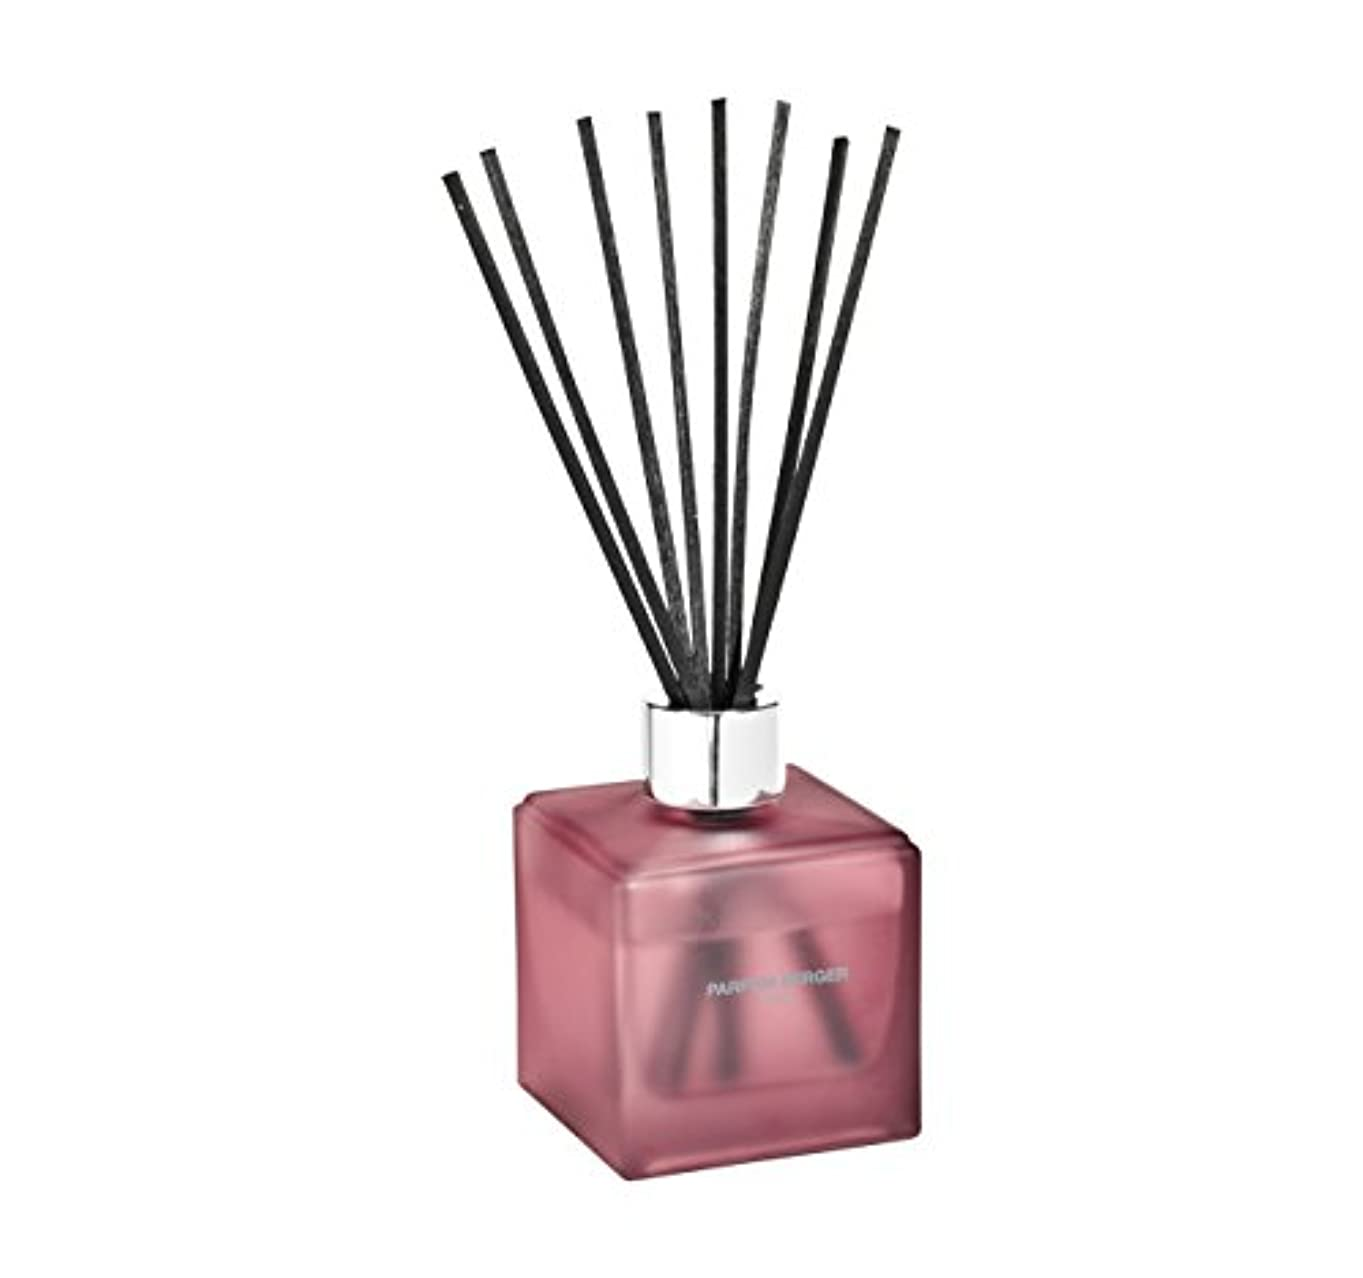 死んでいるあごフロントランプベルジェ Functional Cube Scented Bouquet - Neutralize Kitchen Smells (Green and Zesty) 125ml/4.2oz並行輸入品